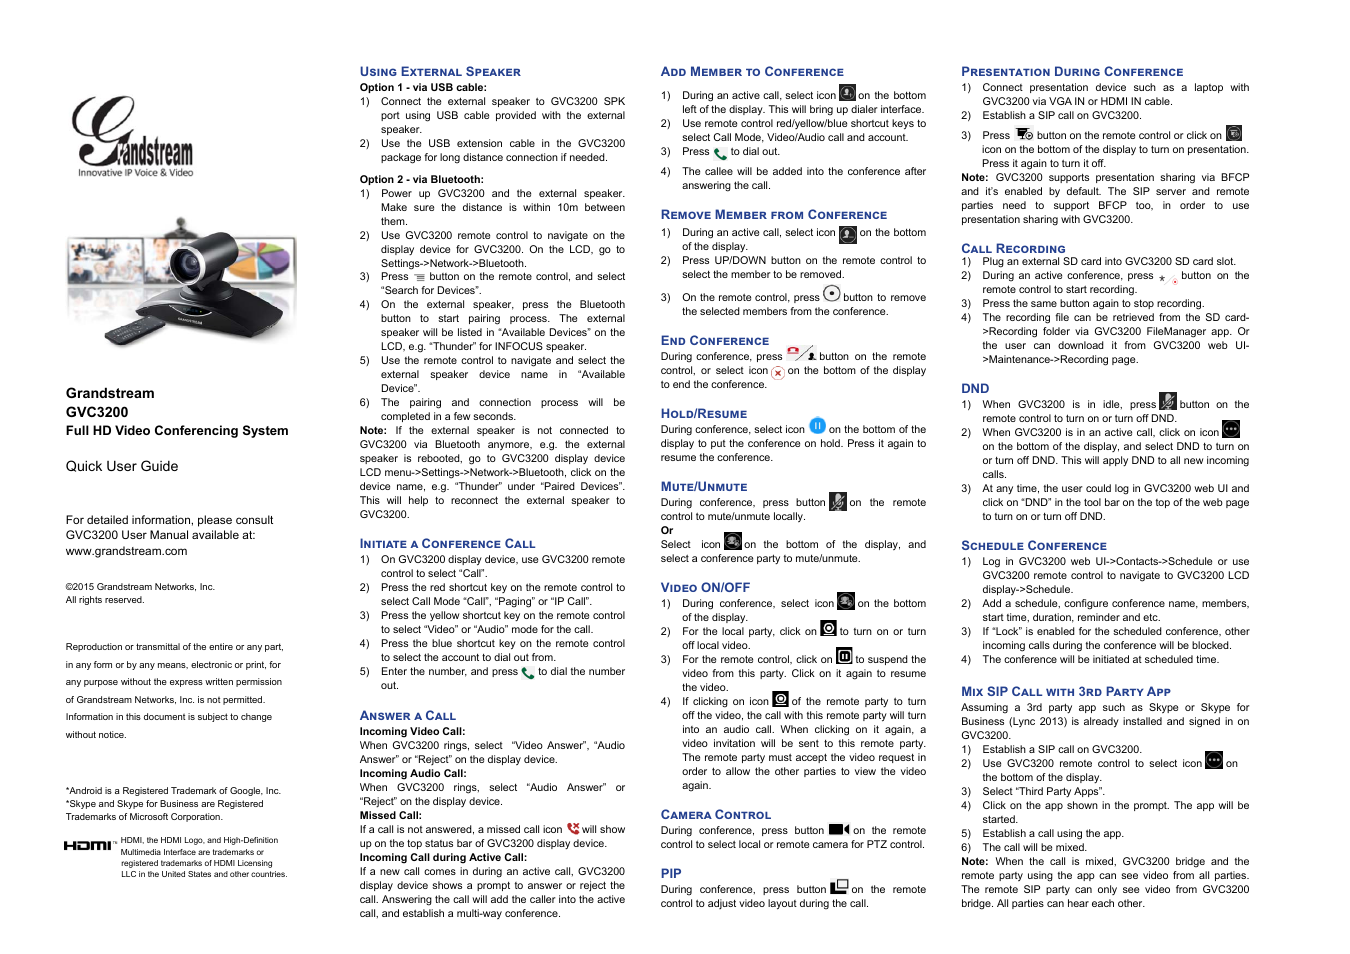 Grandstream GVC3200 Quick User Guide User Manual | 1 page